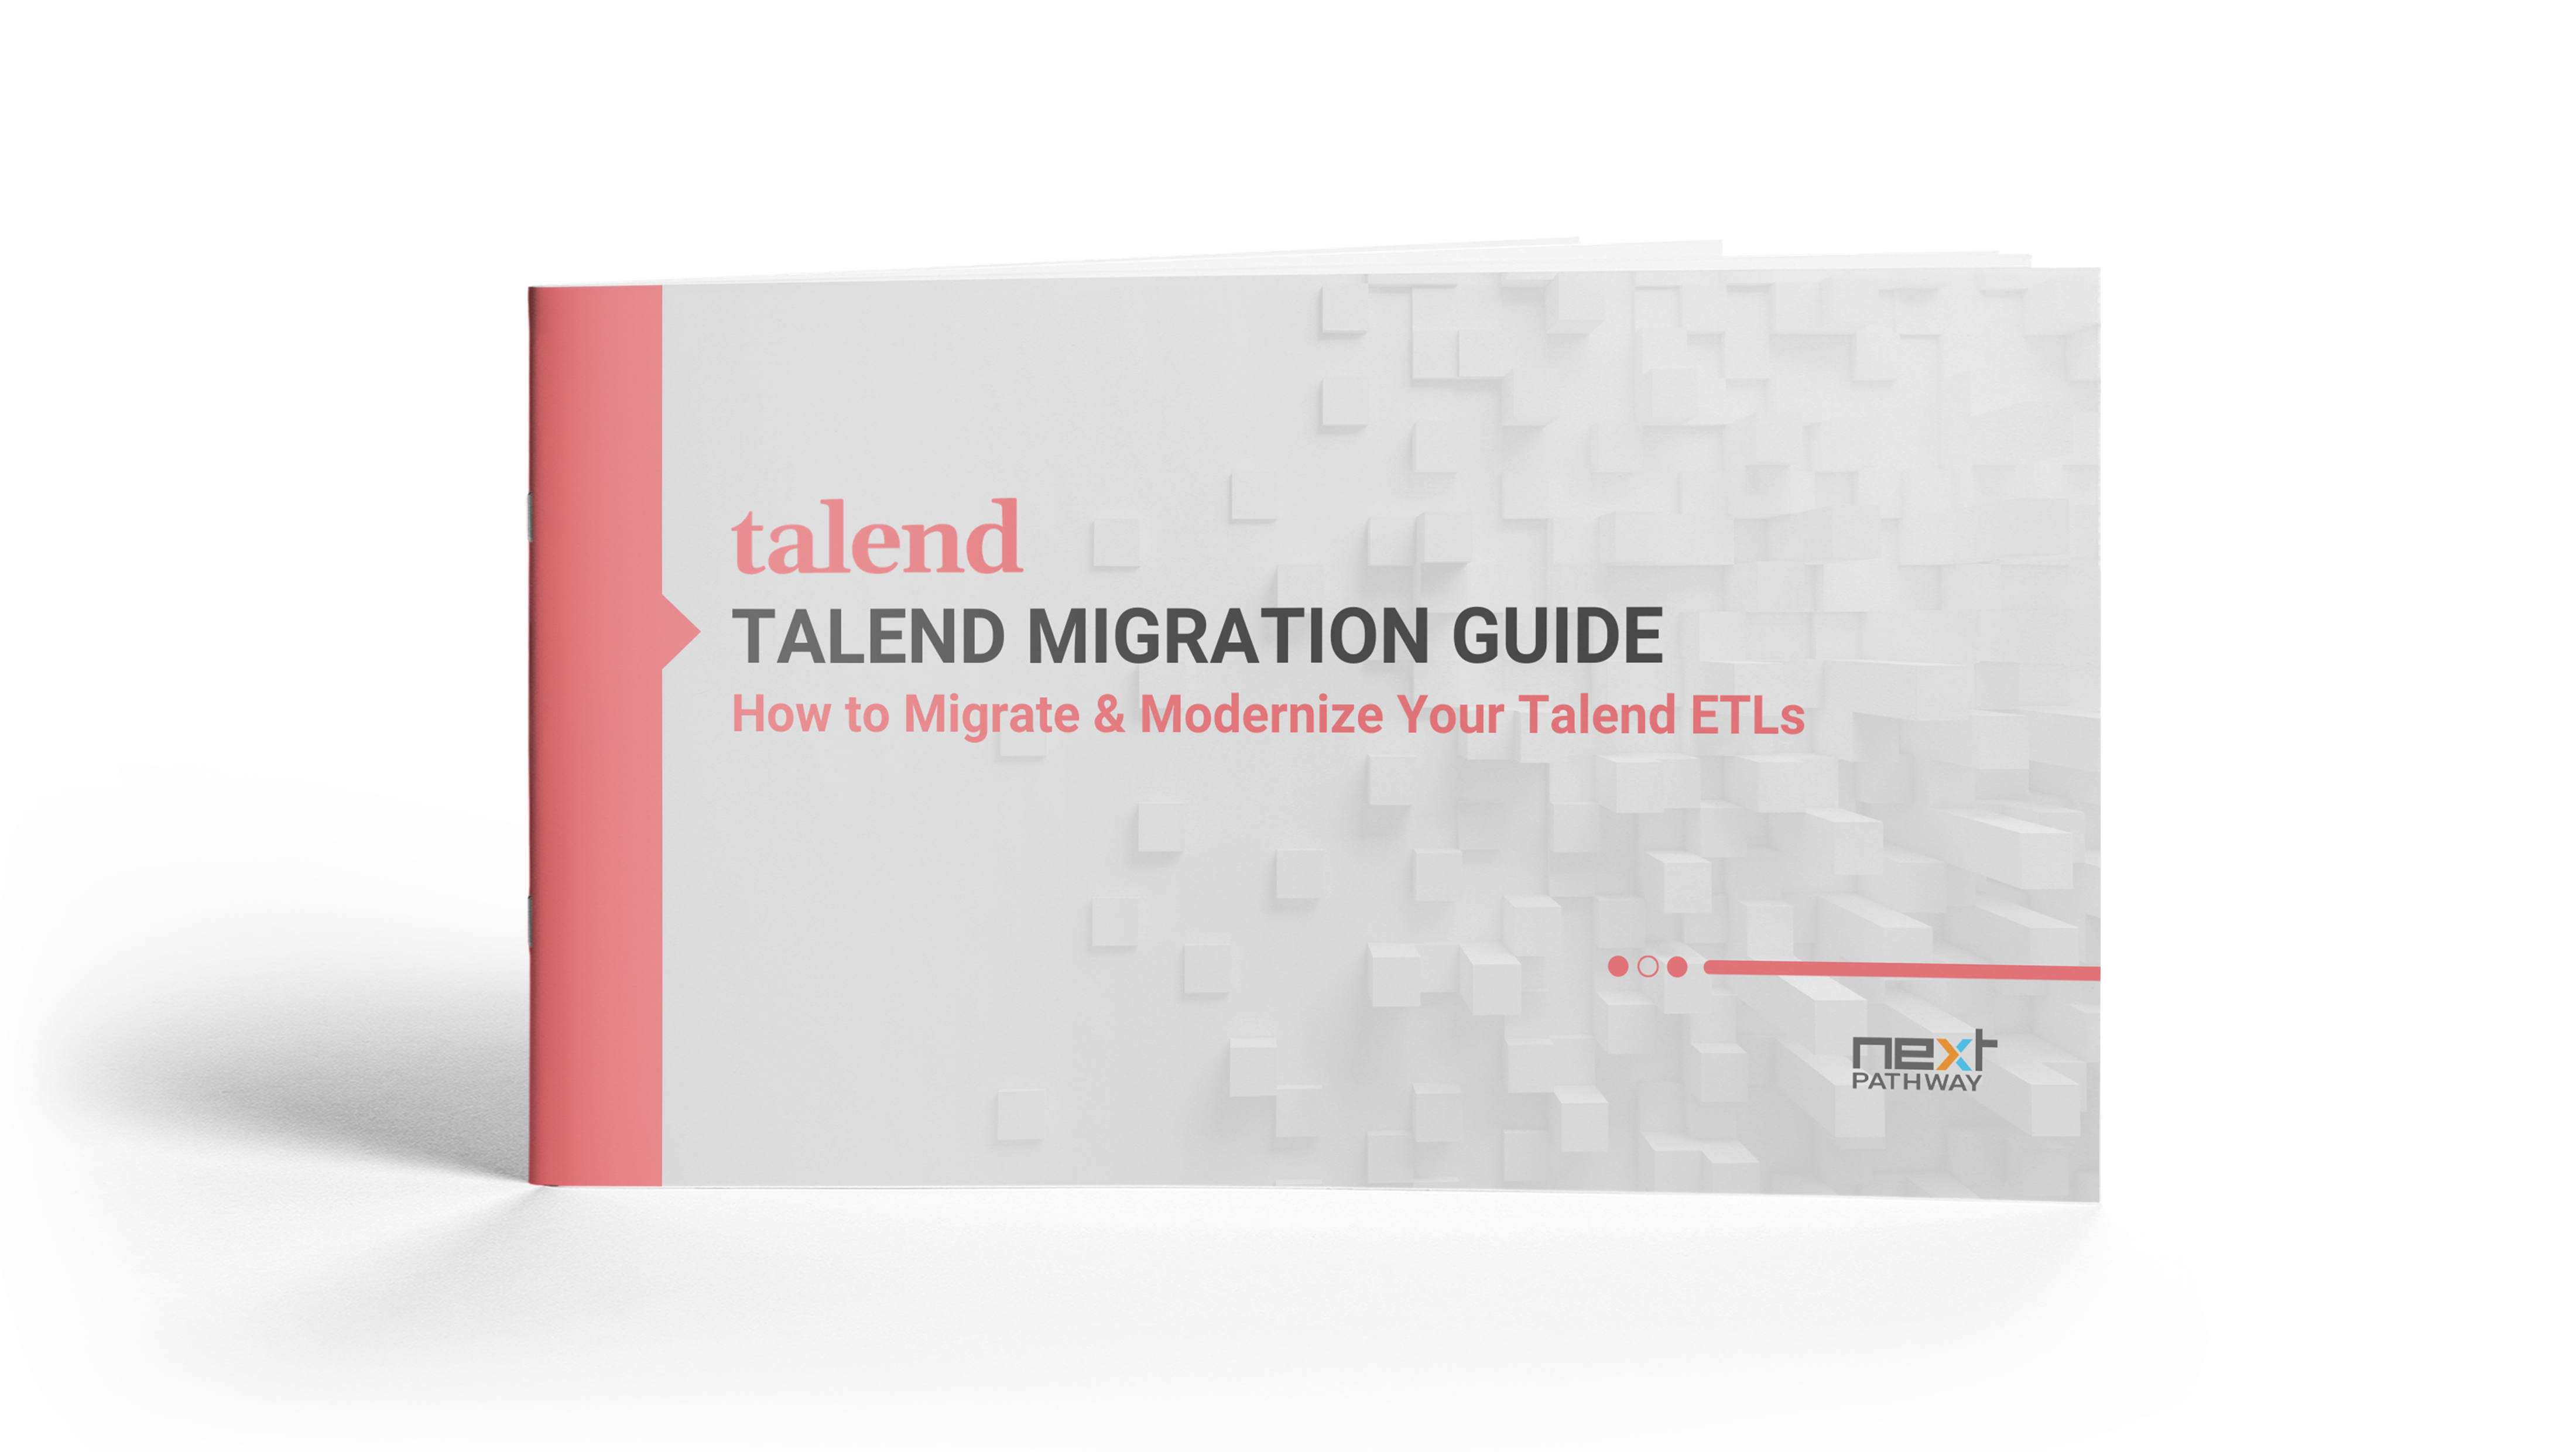 Talend Migration Guide